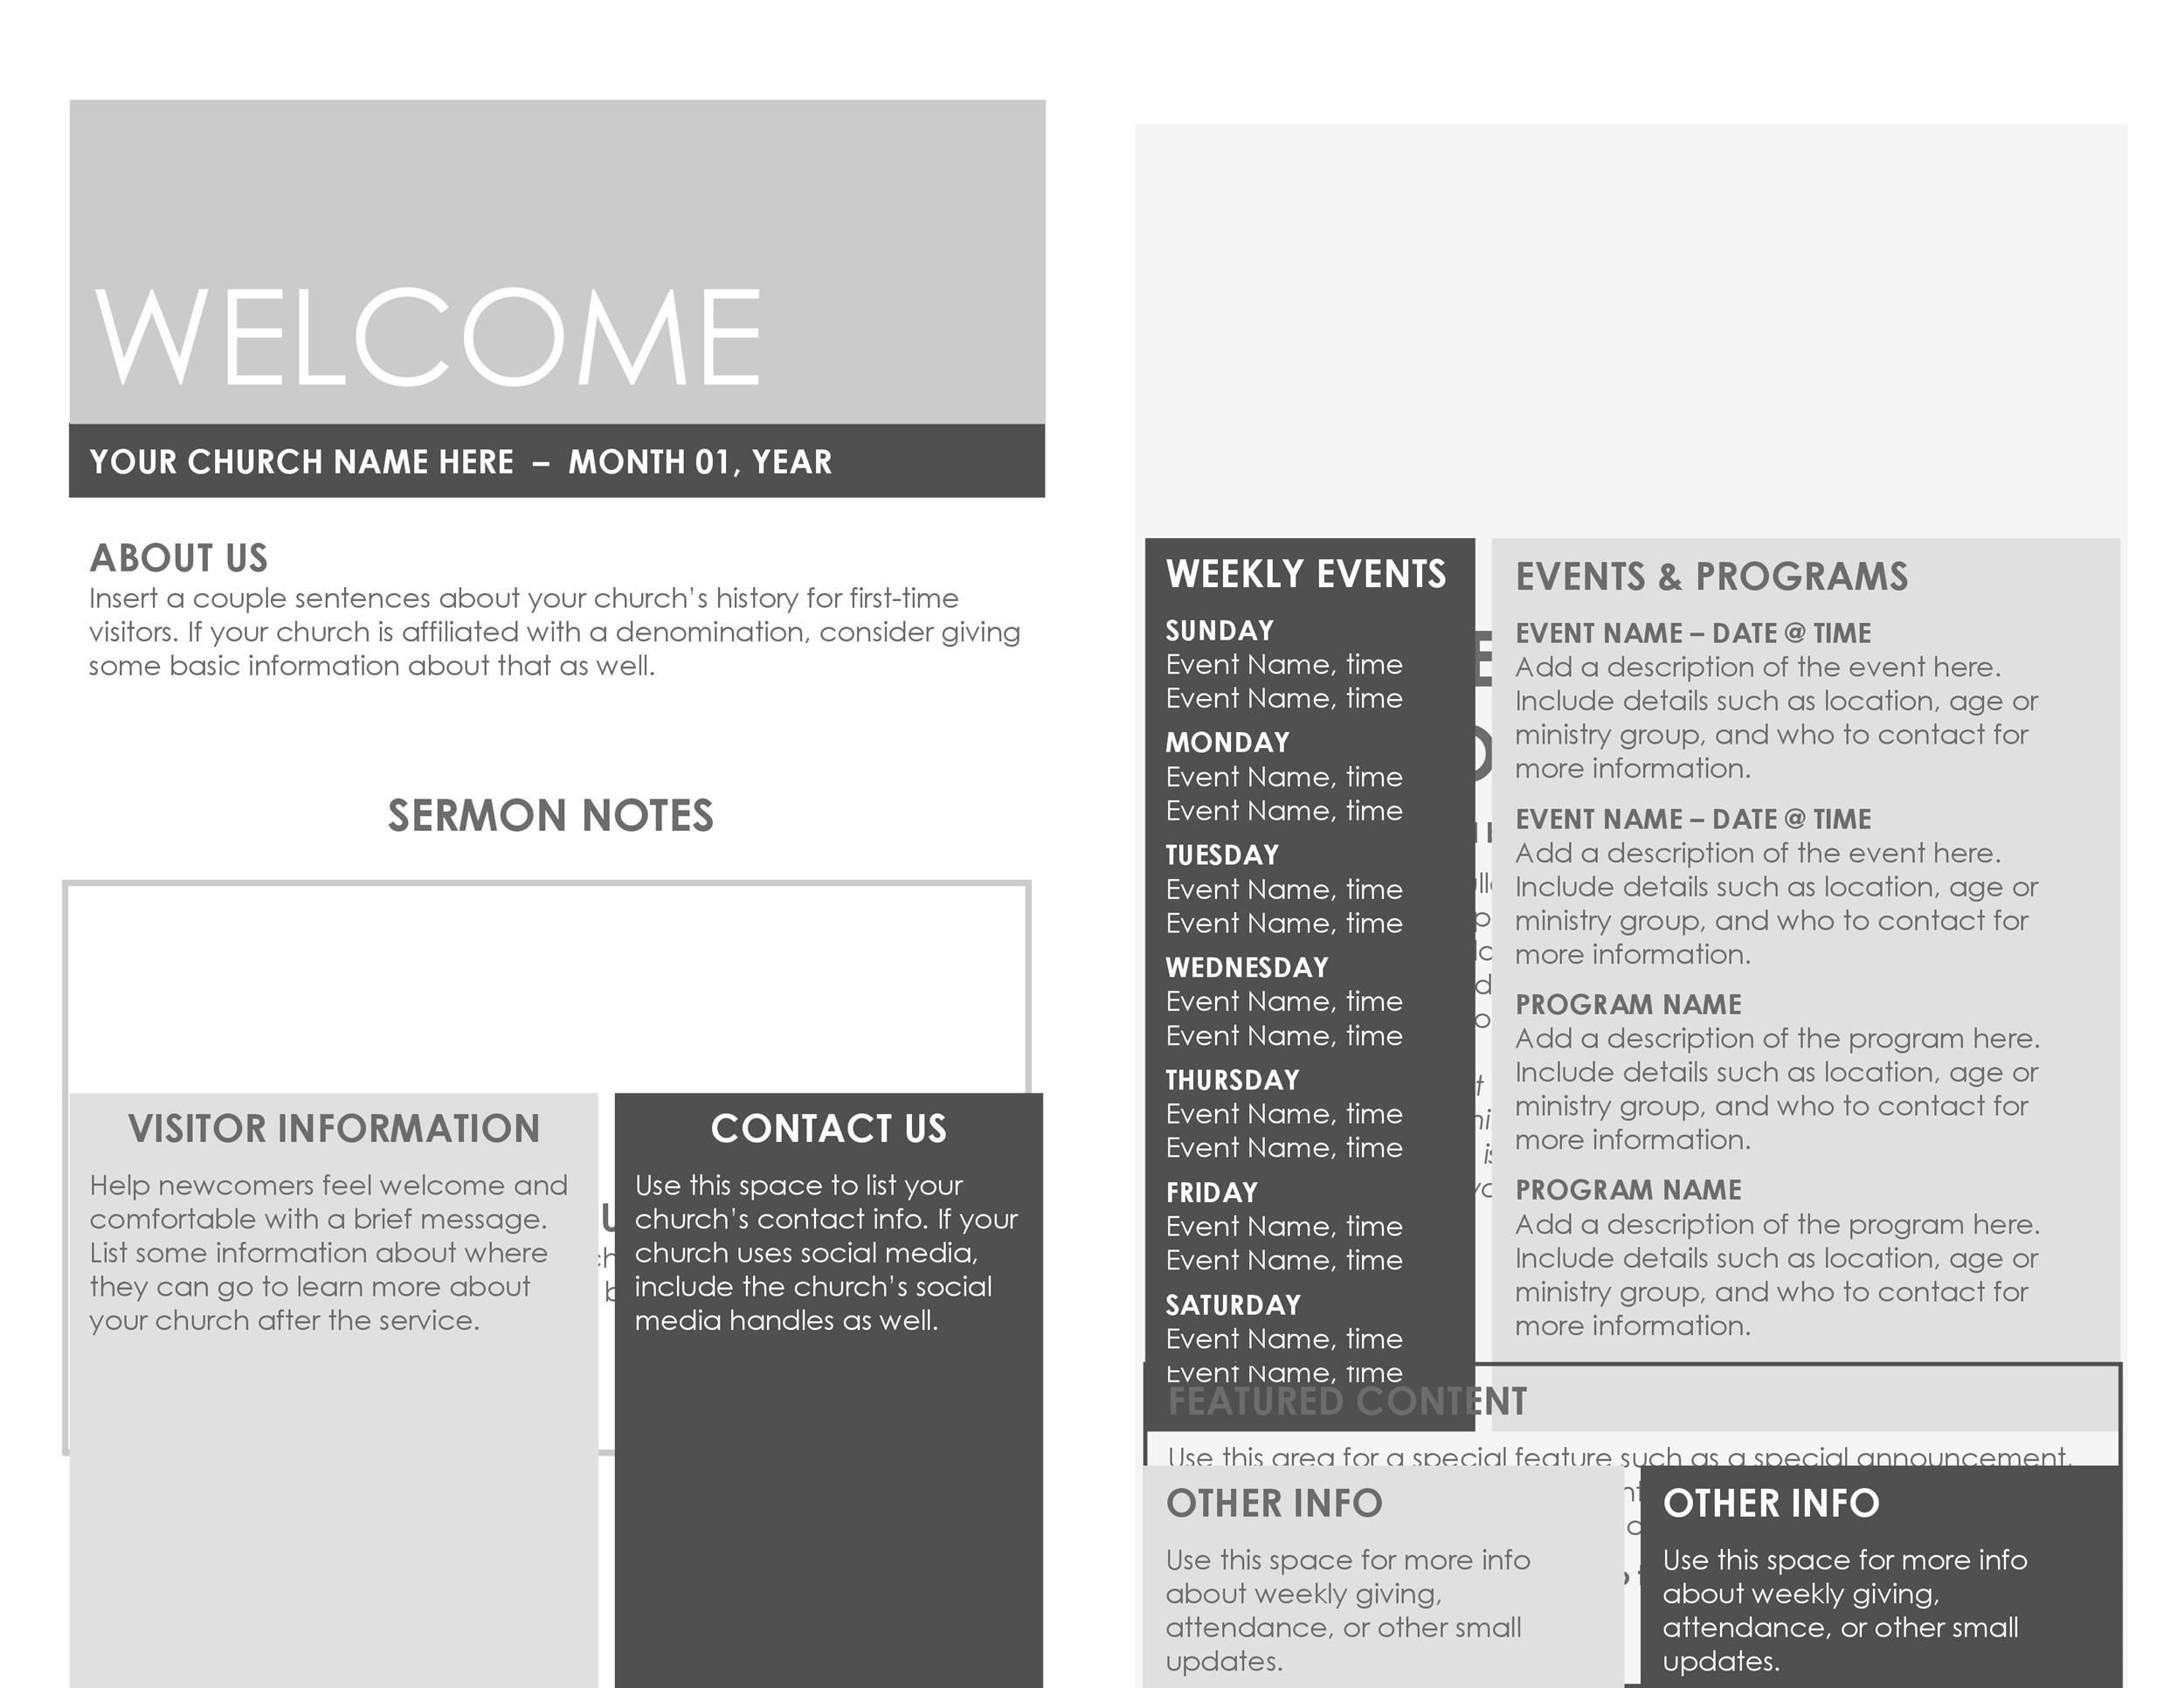 009 Best Free Church Program Template Design Image Full